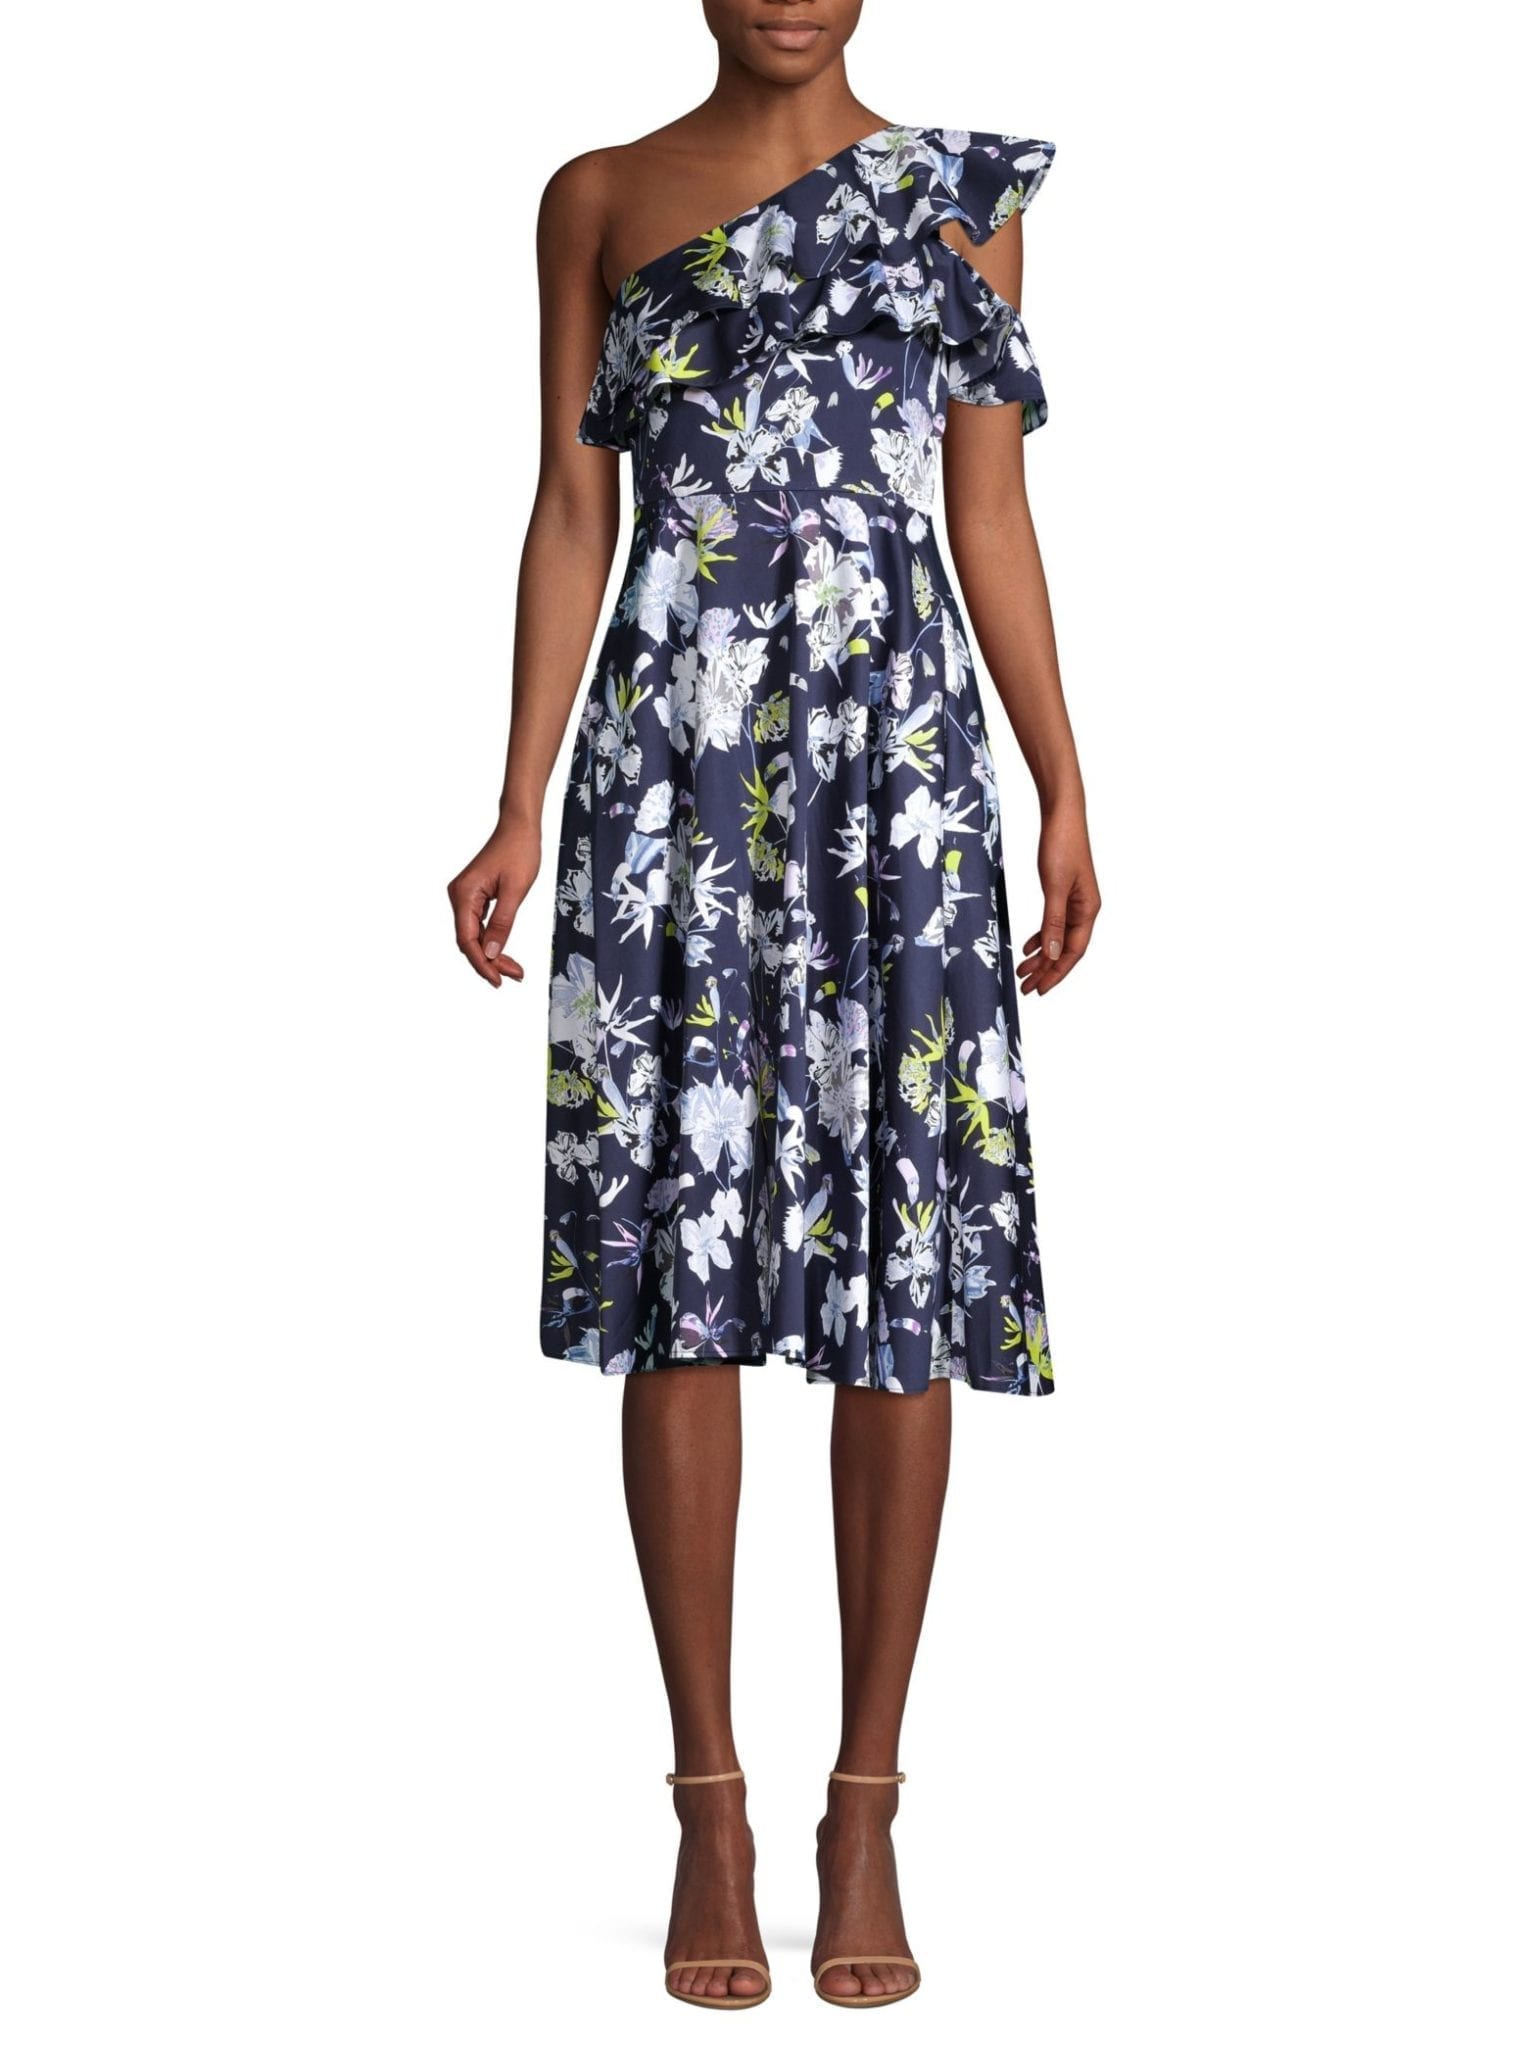 JASON WU COLLECTION Cotton Day Navy / Floral Printed Dress